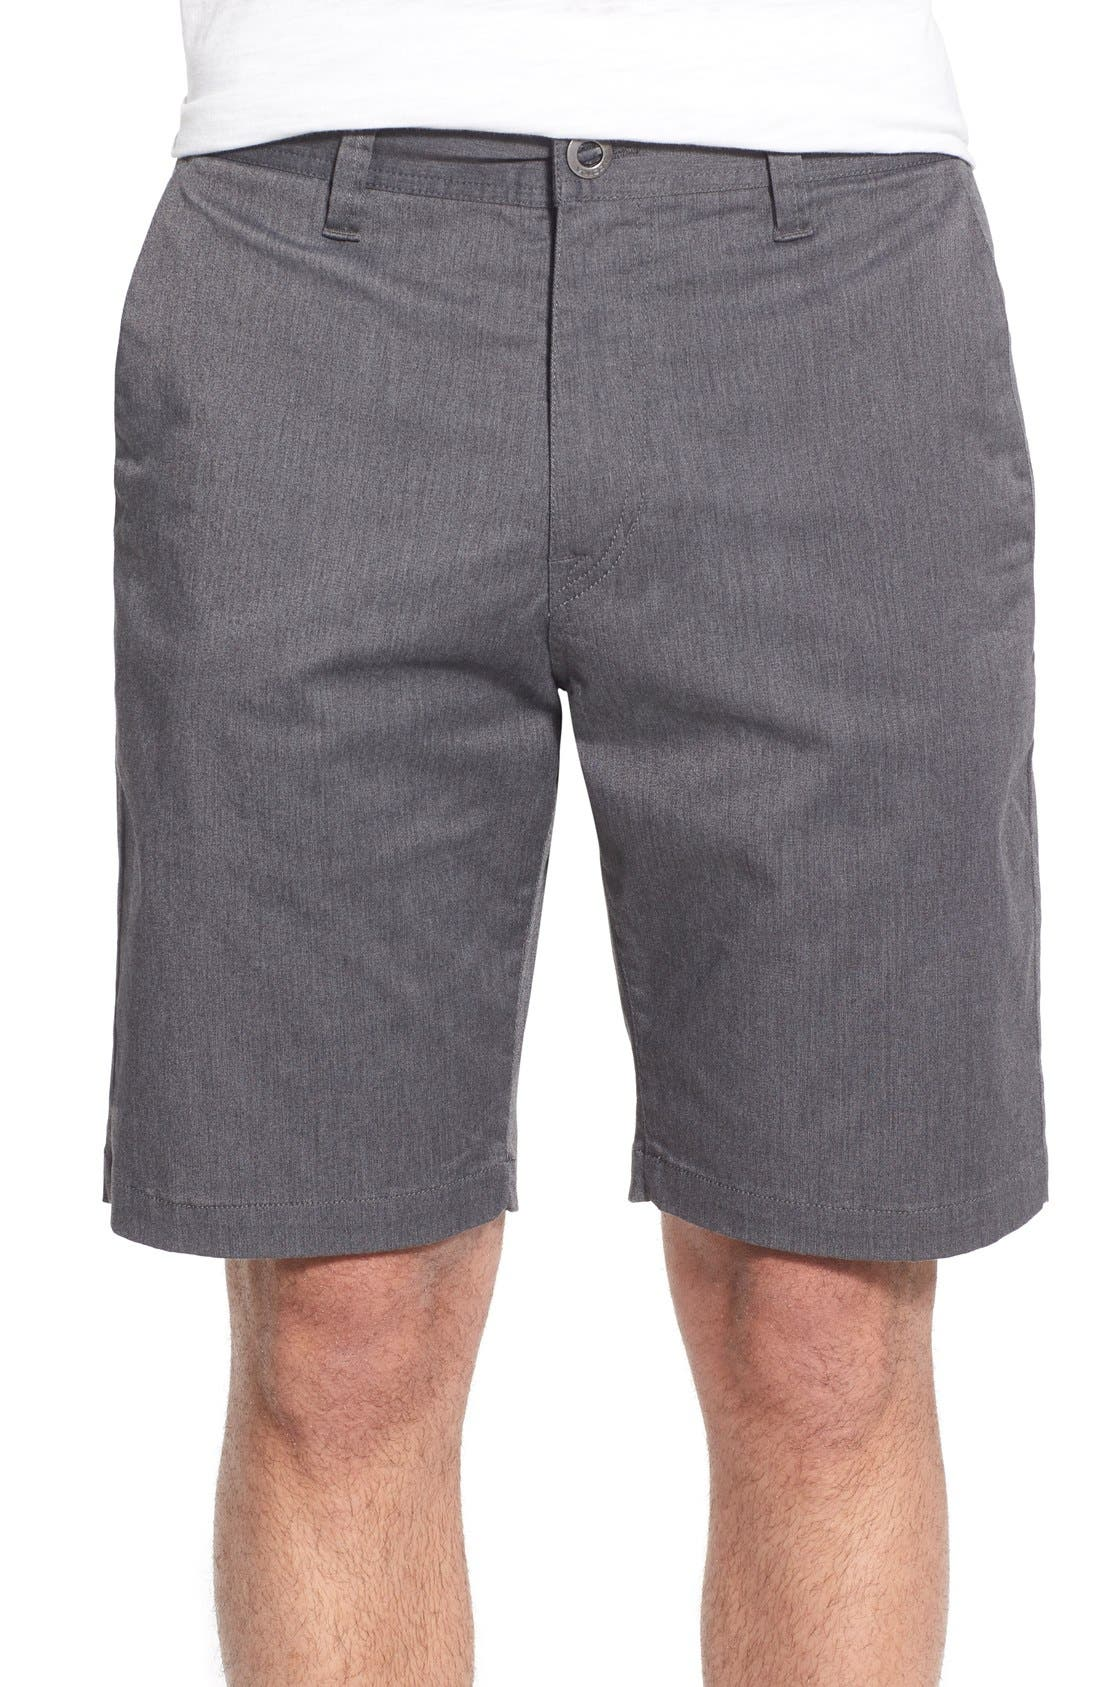 'Lightweight' Shorts,                             Main thumbnail 1, color,                             CHARCOAL HEATHER